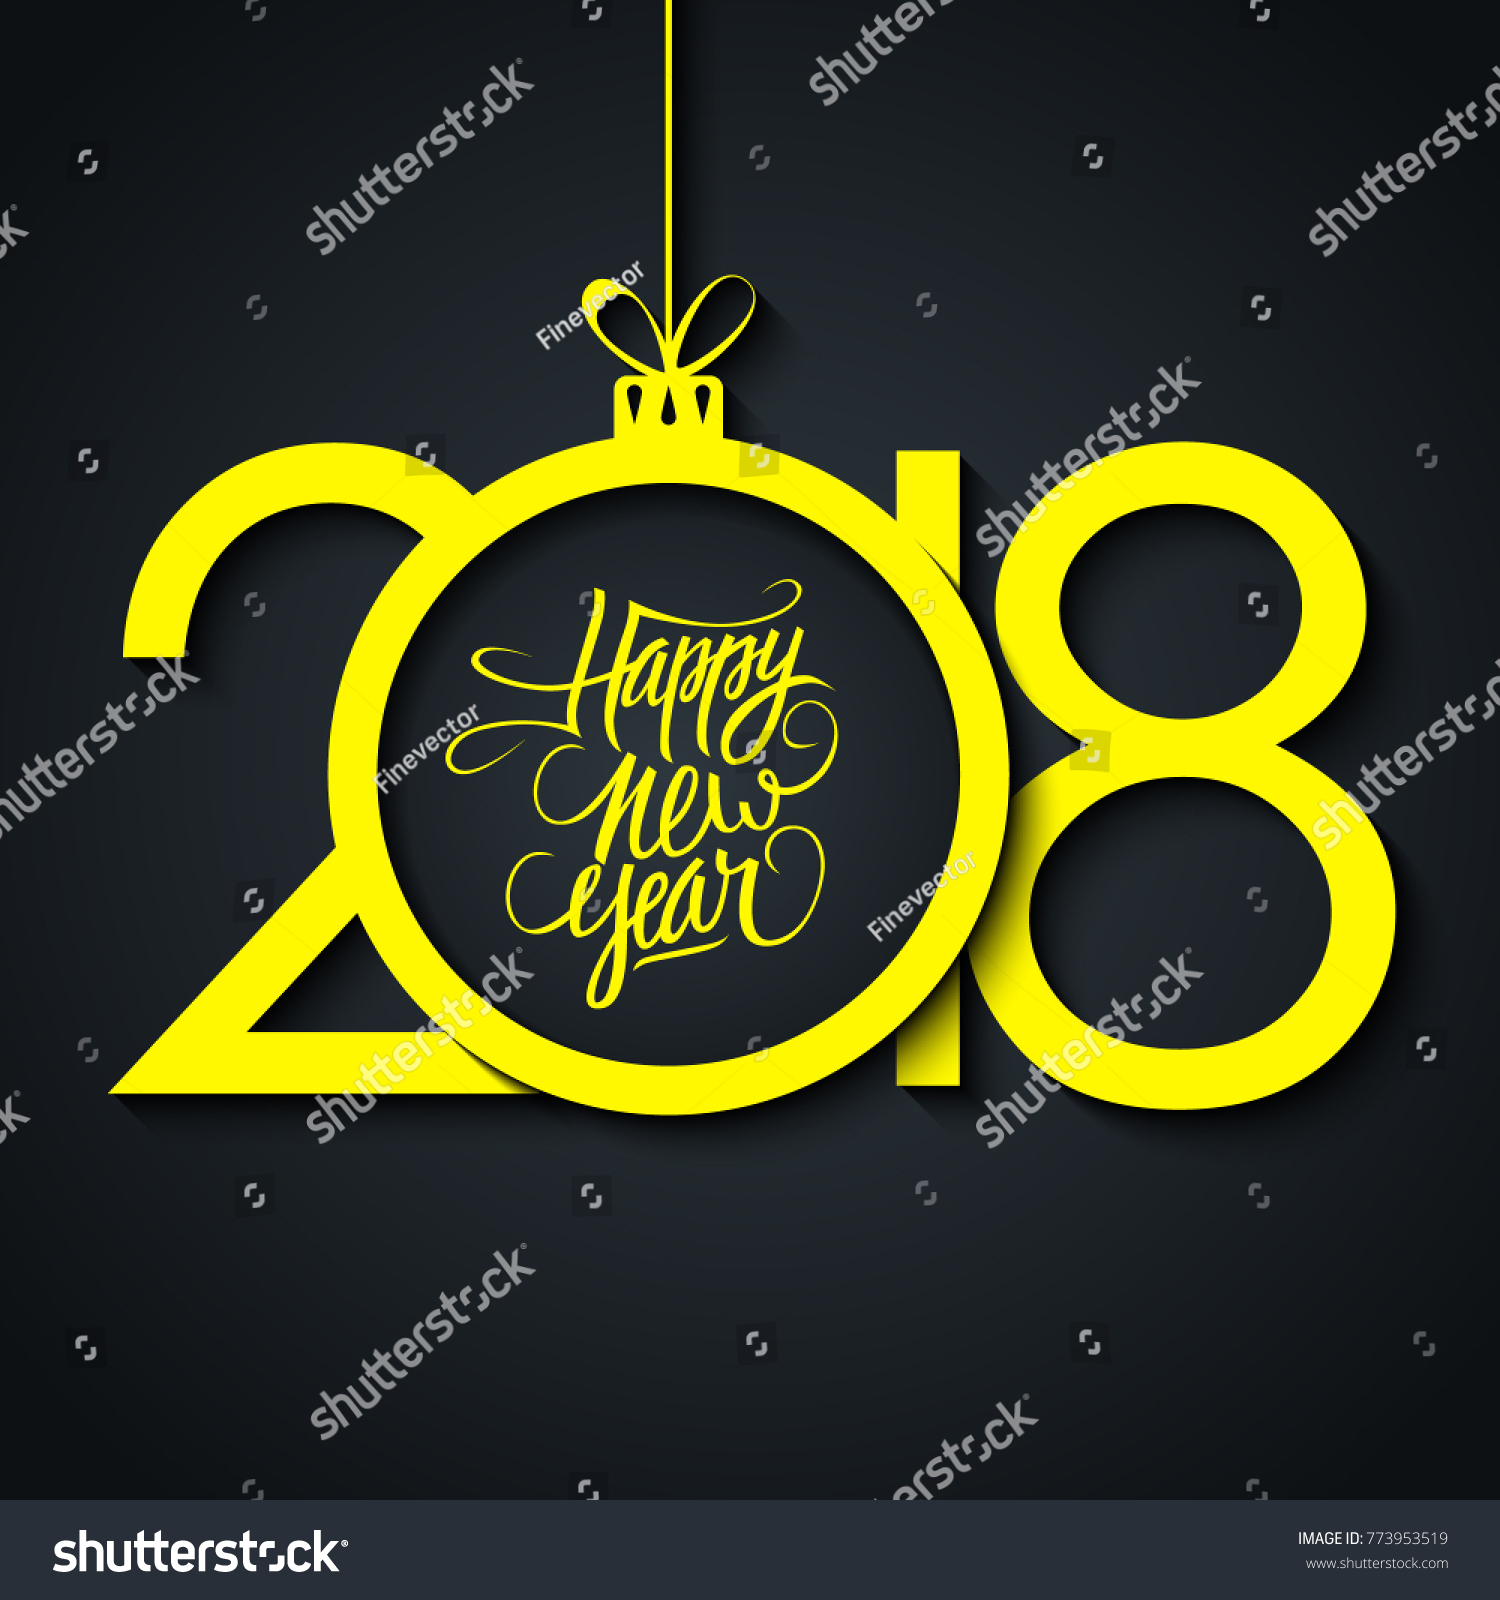 2018 happy new year greeting card stock vector royalty free 2018 happy new year greeting card with handwritten holiday greetings and yellow christmas ball on black m4hsunfo